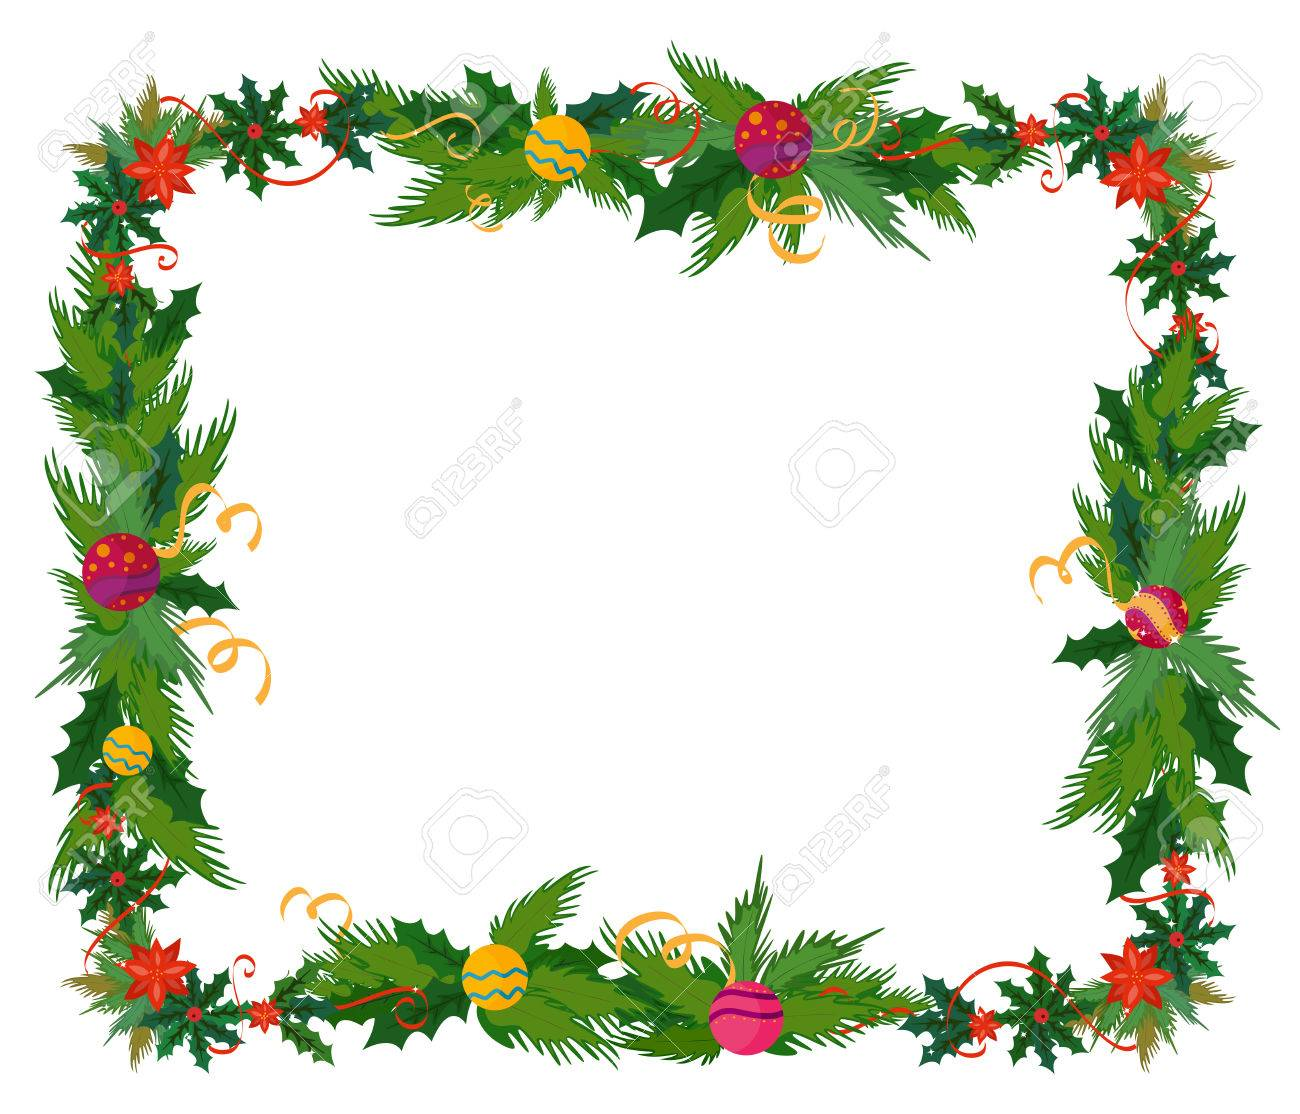 Merry Christmas Celebration Border And Decoration Frame In Vector ...